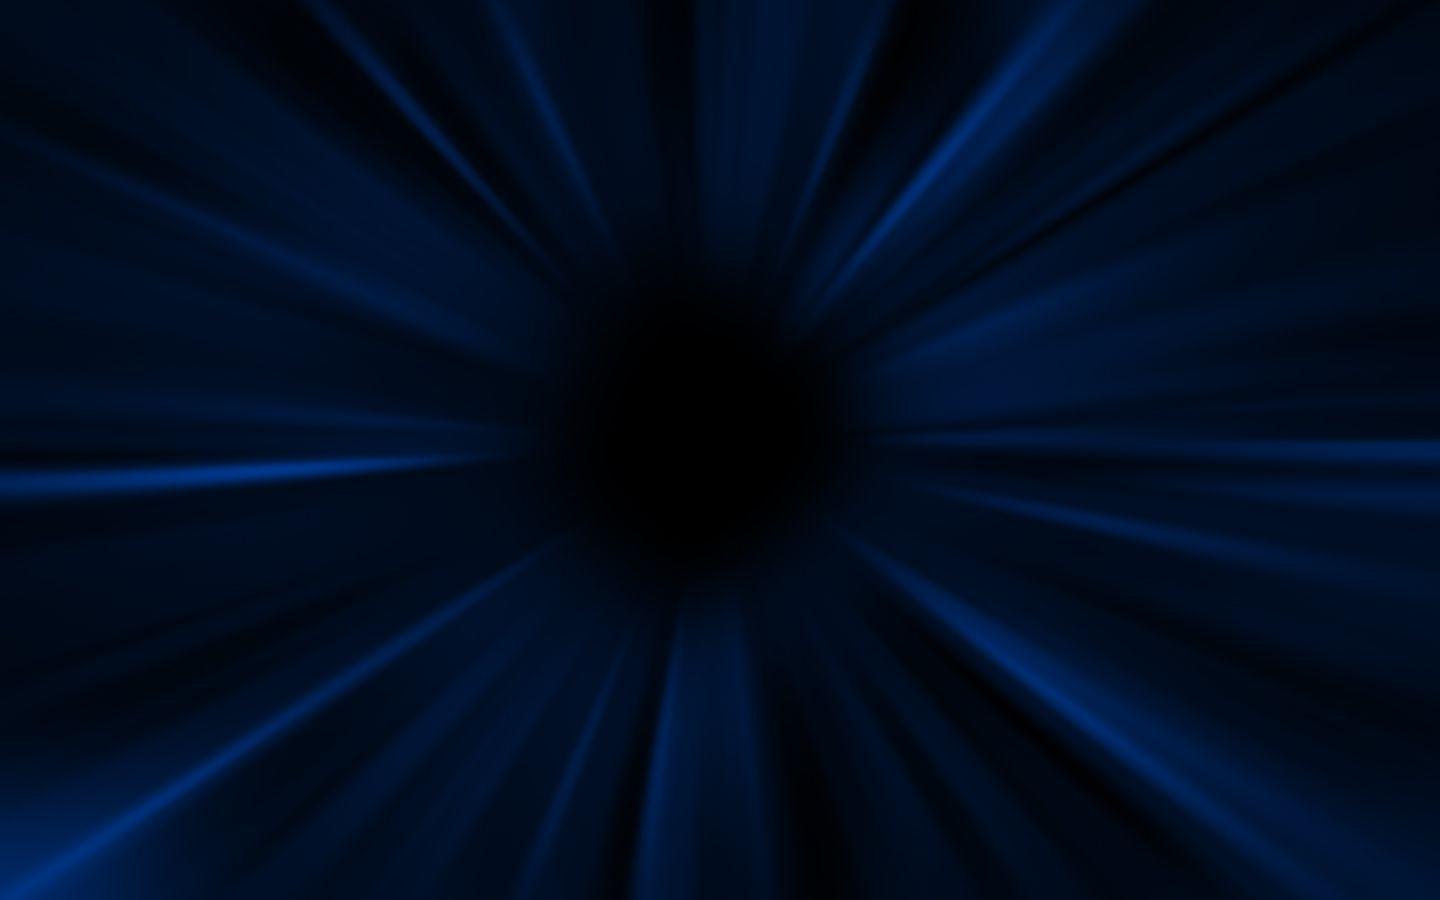 Navy Blue Background Hd Wallpapers Pulse